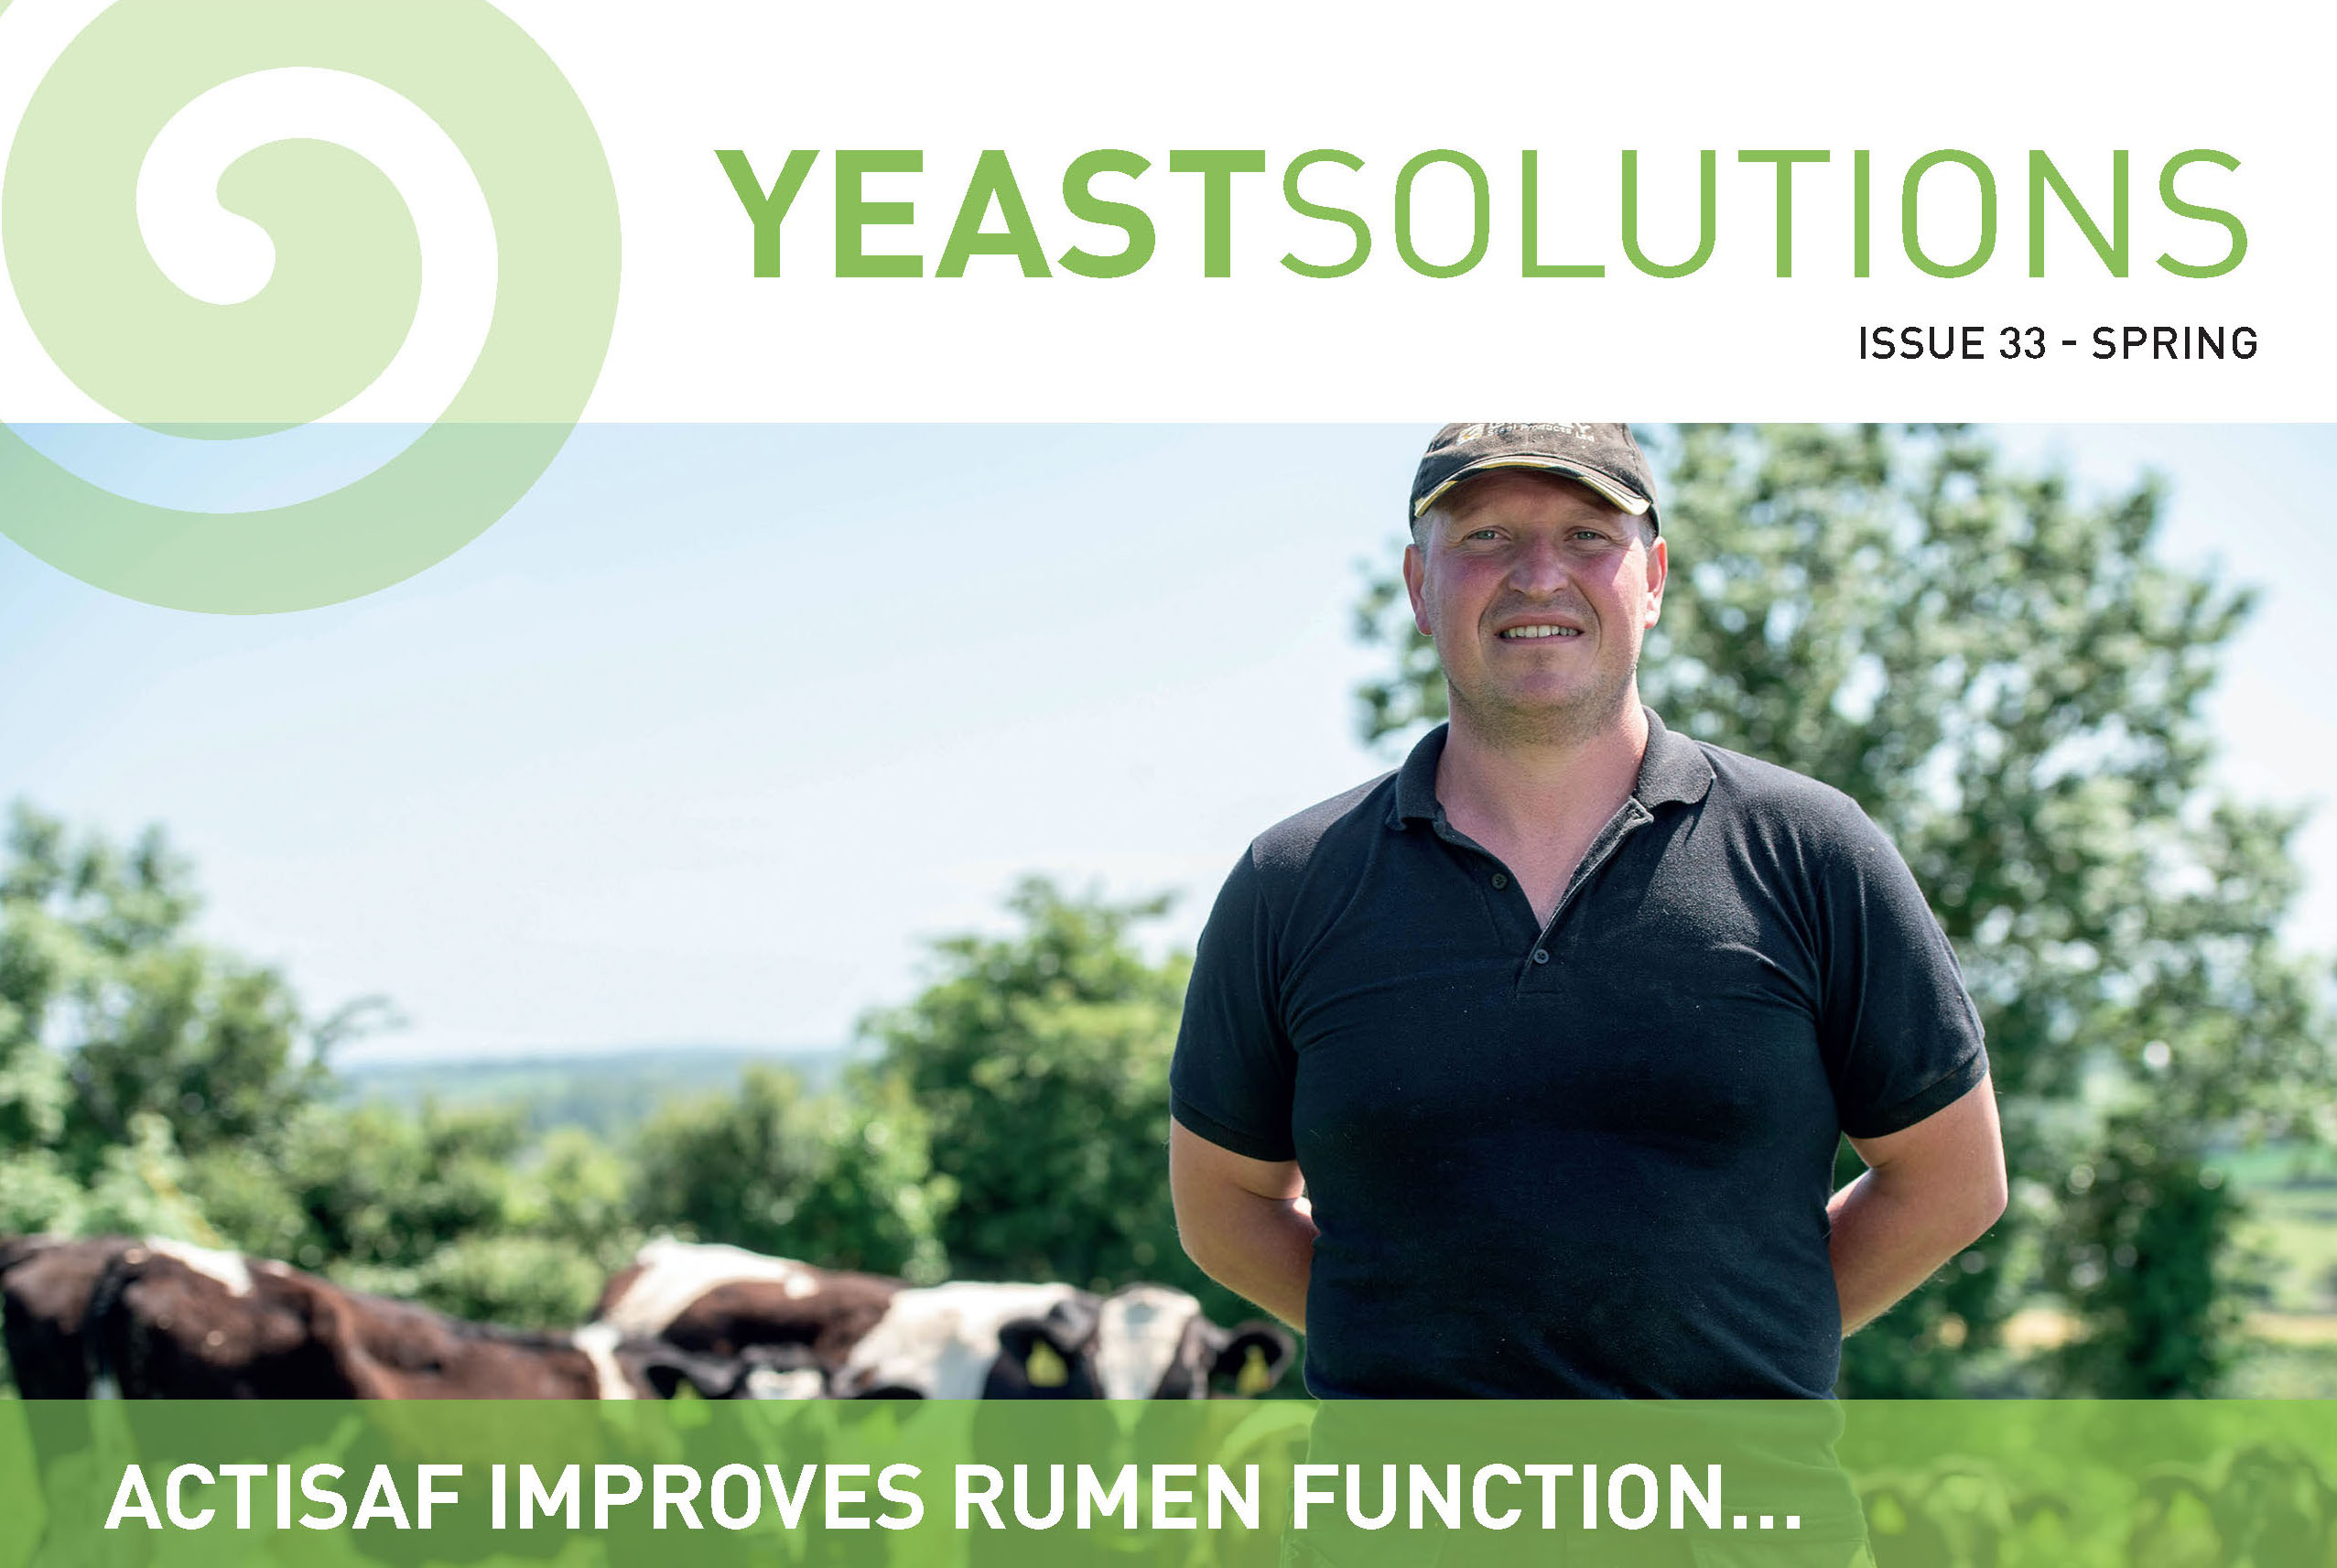 Spring Yeast Solutions 2019